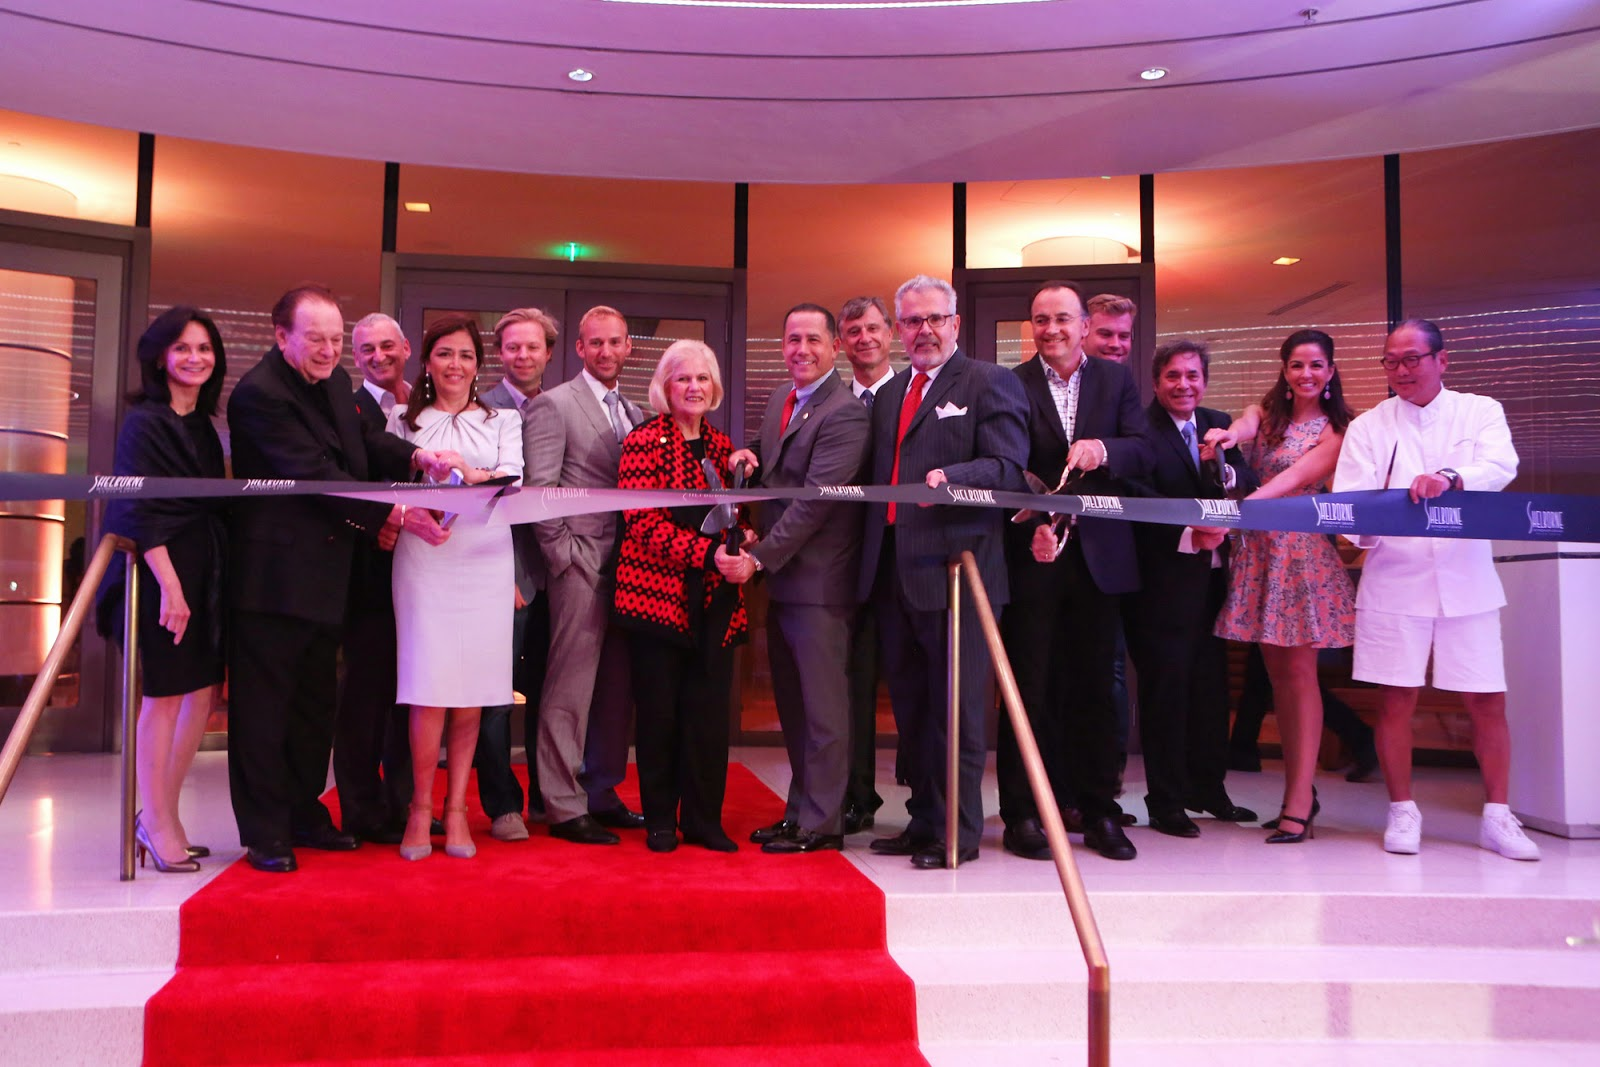 Shelborne Wyndham Grand South Beach Hosts Ribbon Cutting Ceremony and VIP Celebration